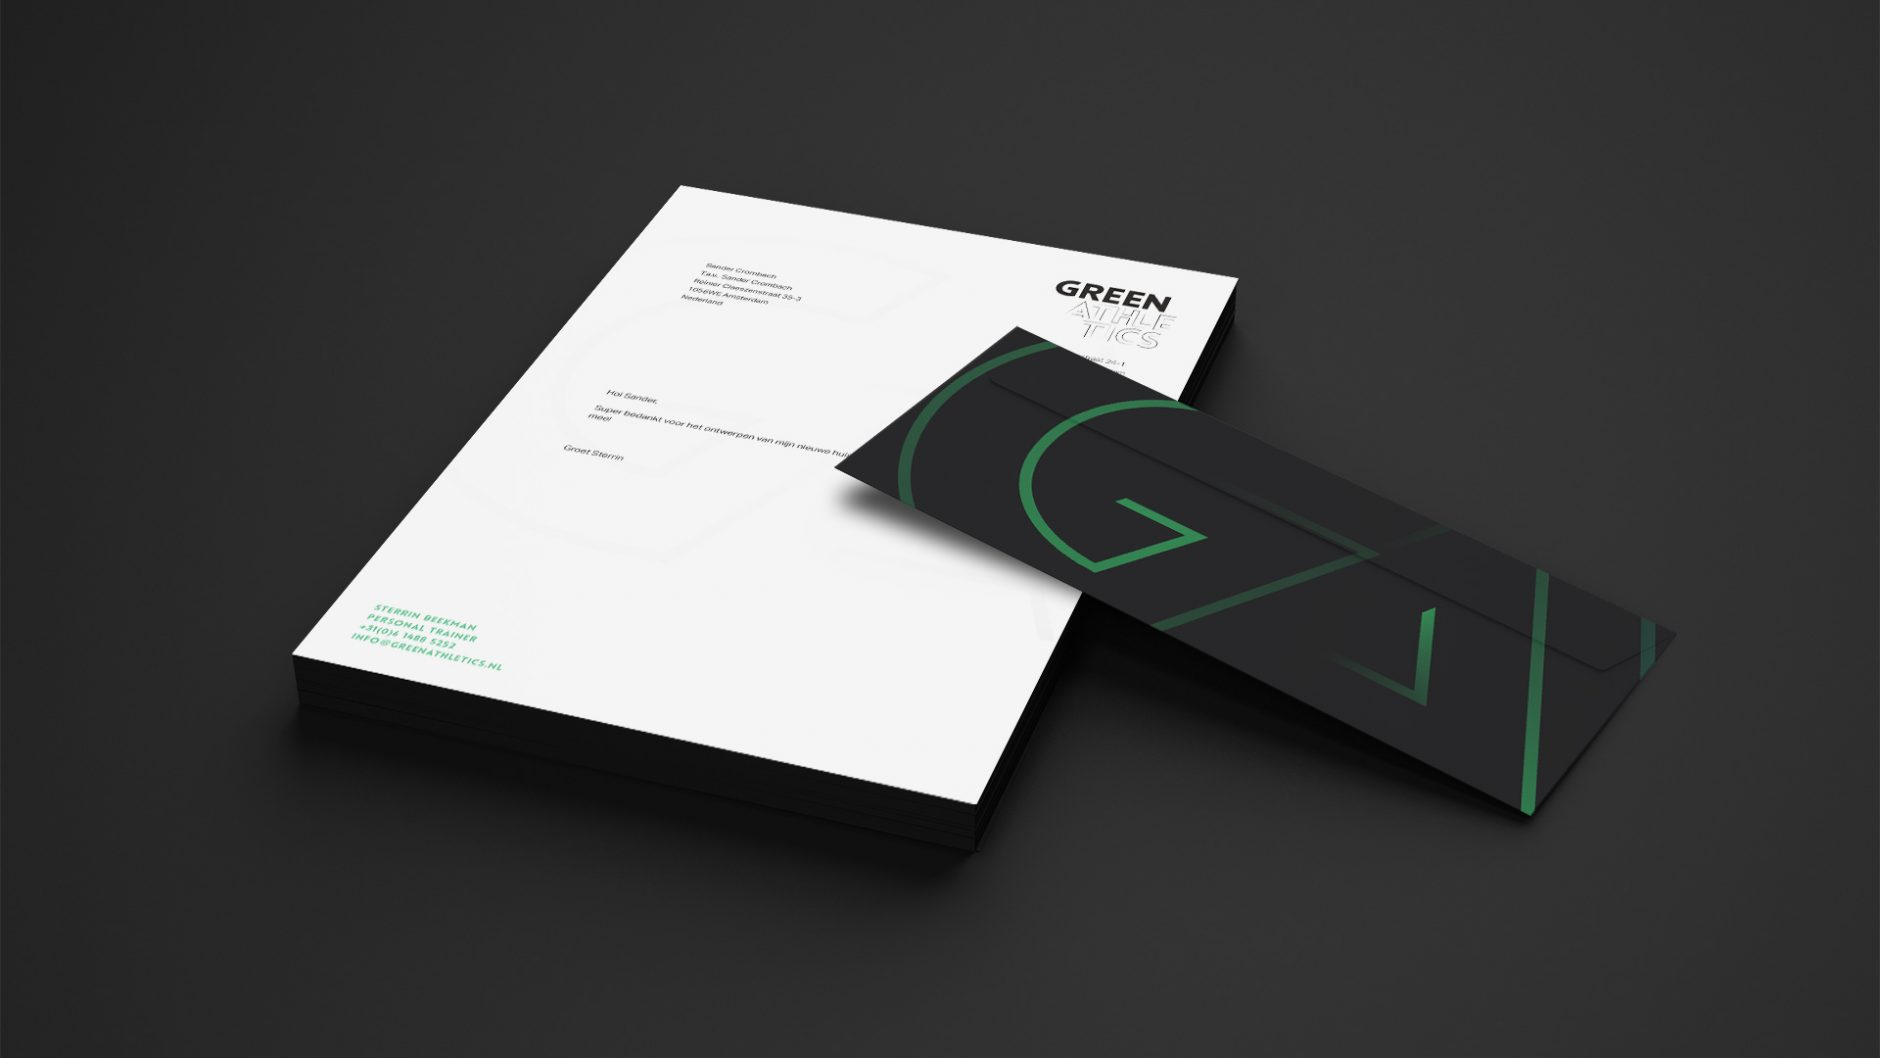 Green Athletics – Briefpapier